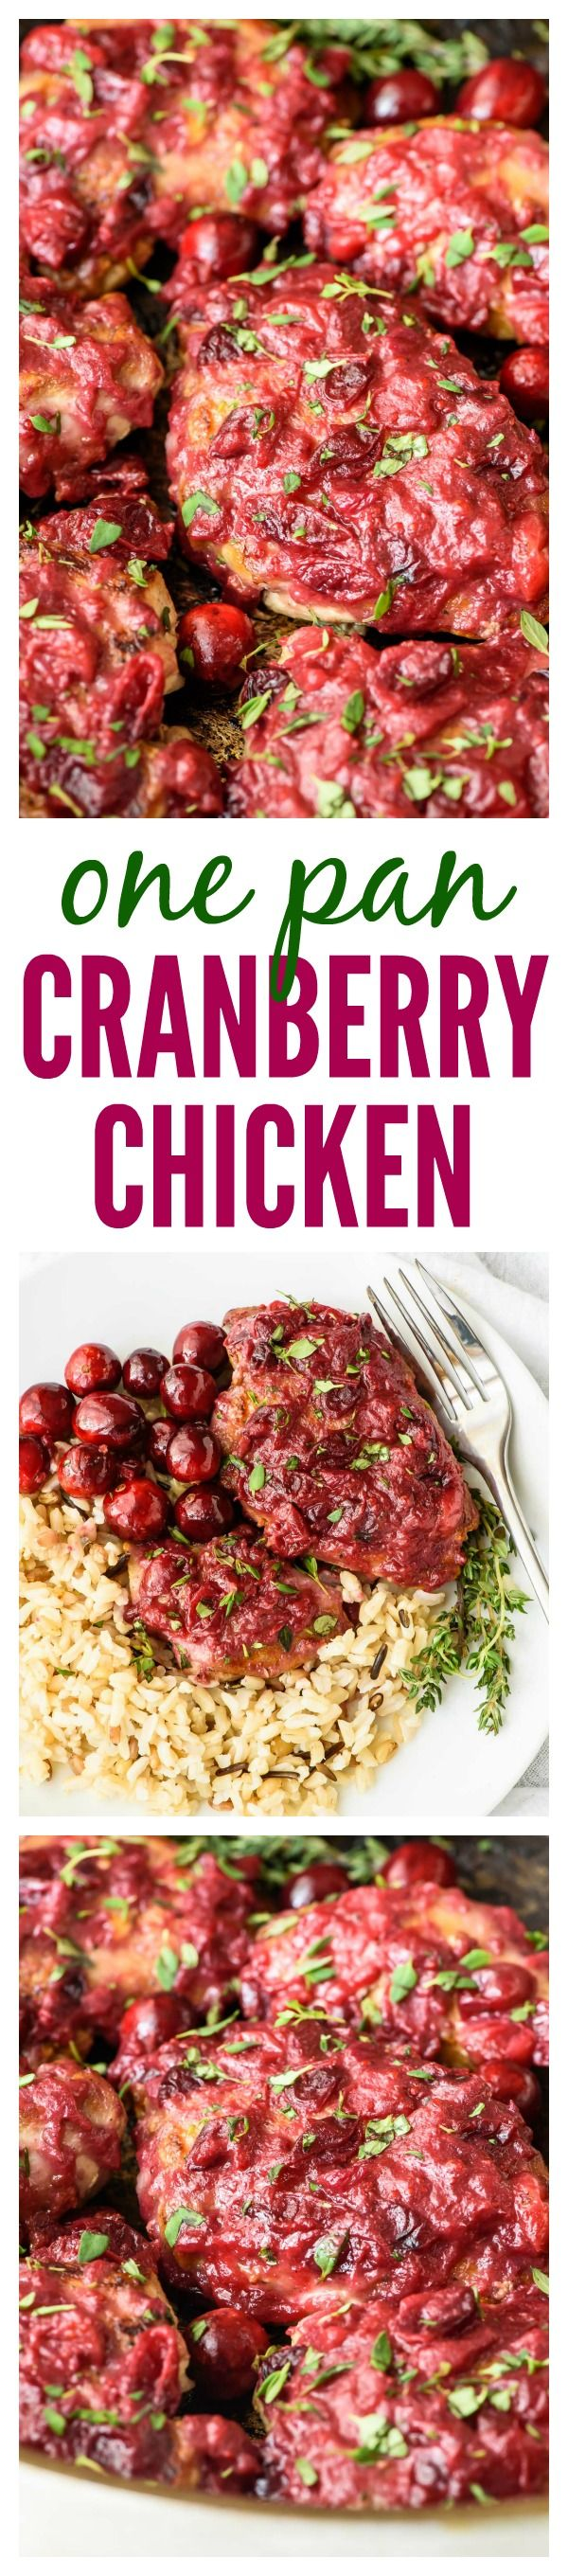 One Pan Cranberry Chicken. Juicy chicken with a sticky cranberry glaze. Ready in only 30 minutes!                                                                                                                                                                                 More